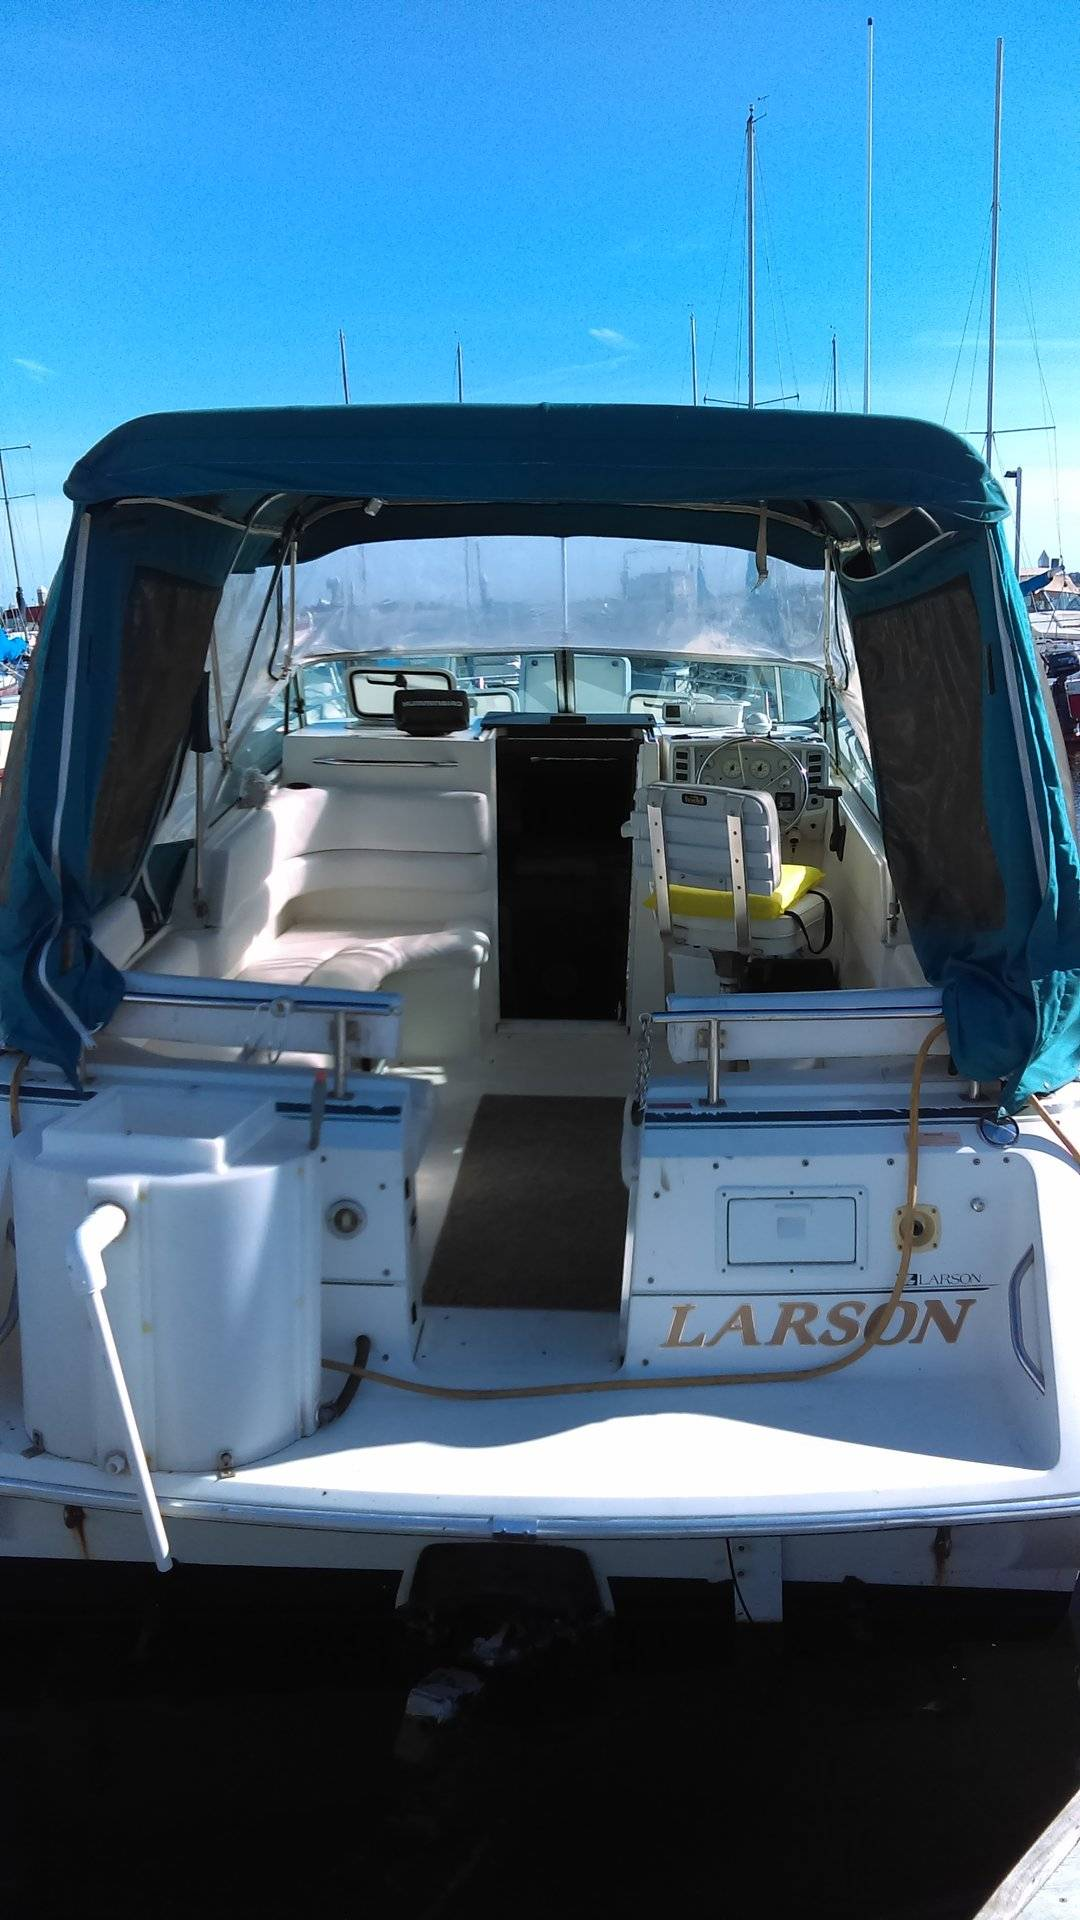 For Sale - $11,000 - Clean 25' Larson Family Camping/Fishing